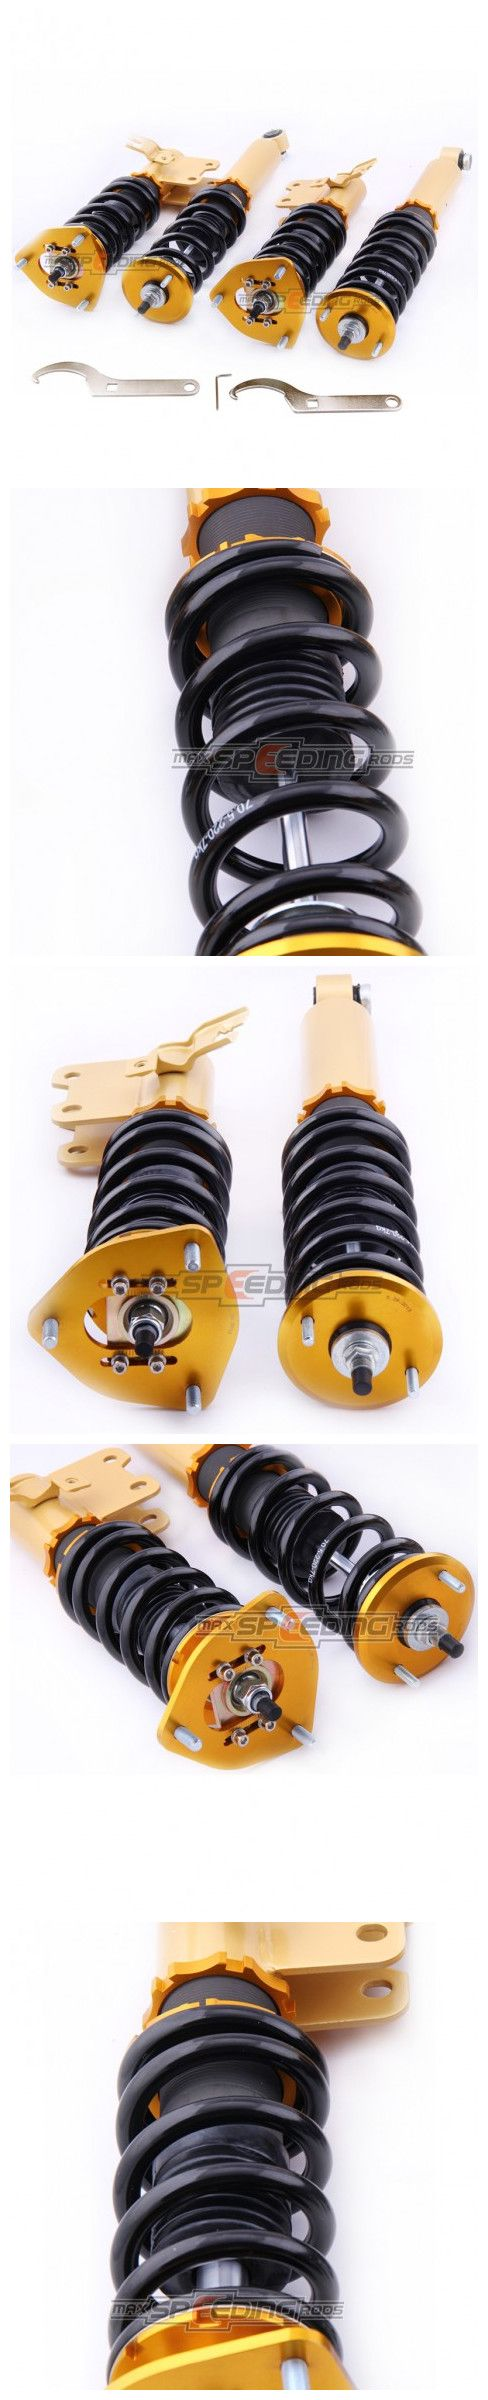 High Performance 89-93 Nissan S13 Silvia Sileighty 180/200/240SX Adjustable Coilover / Shock Absorber